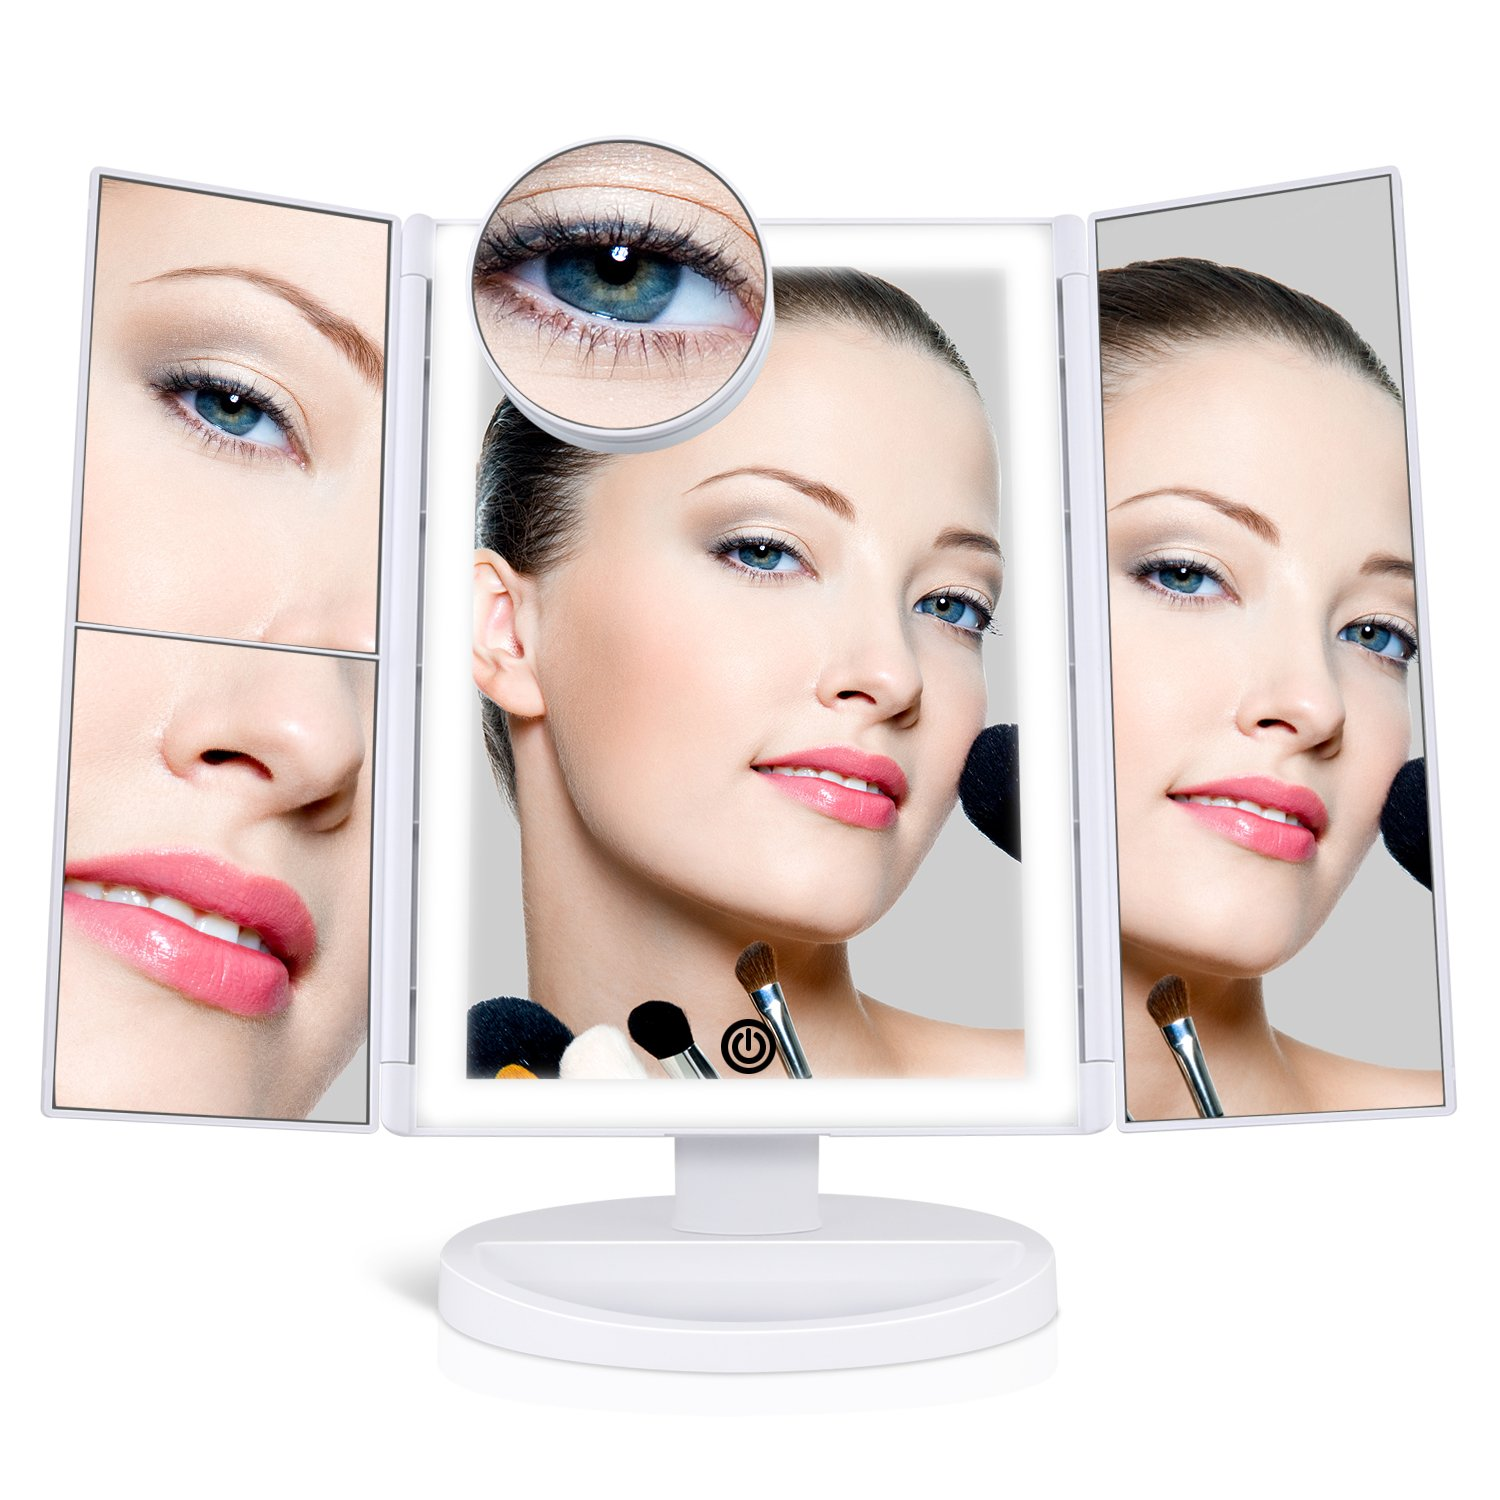 [Upgraded] SUPRENT Makeup Mirror with 36 LED Lights, 10x/3x/2x Magnification, 4 Tape-lights Vanity Mirror with Touch Button, AAA and USB Powered, Portable High-Definition Cosmetic Mirror (White)